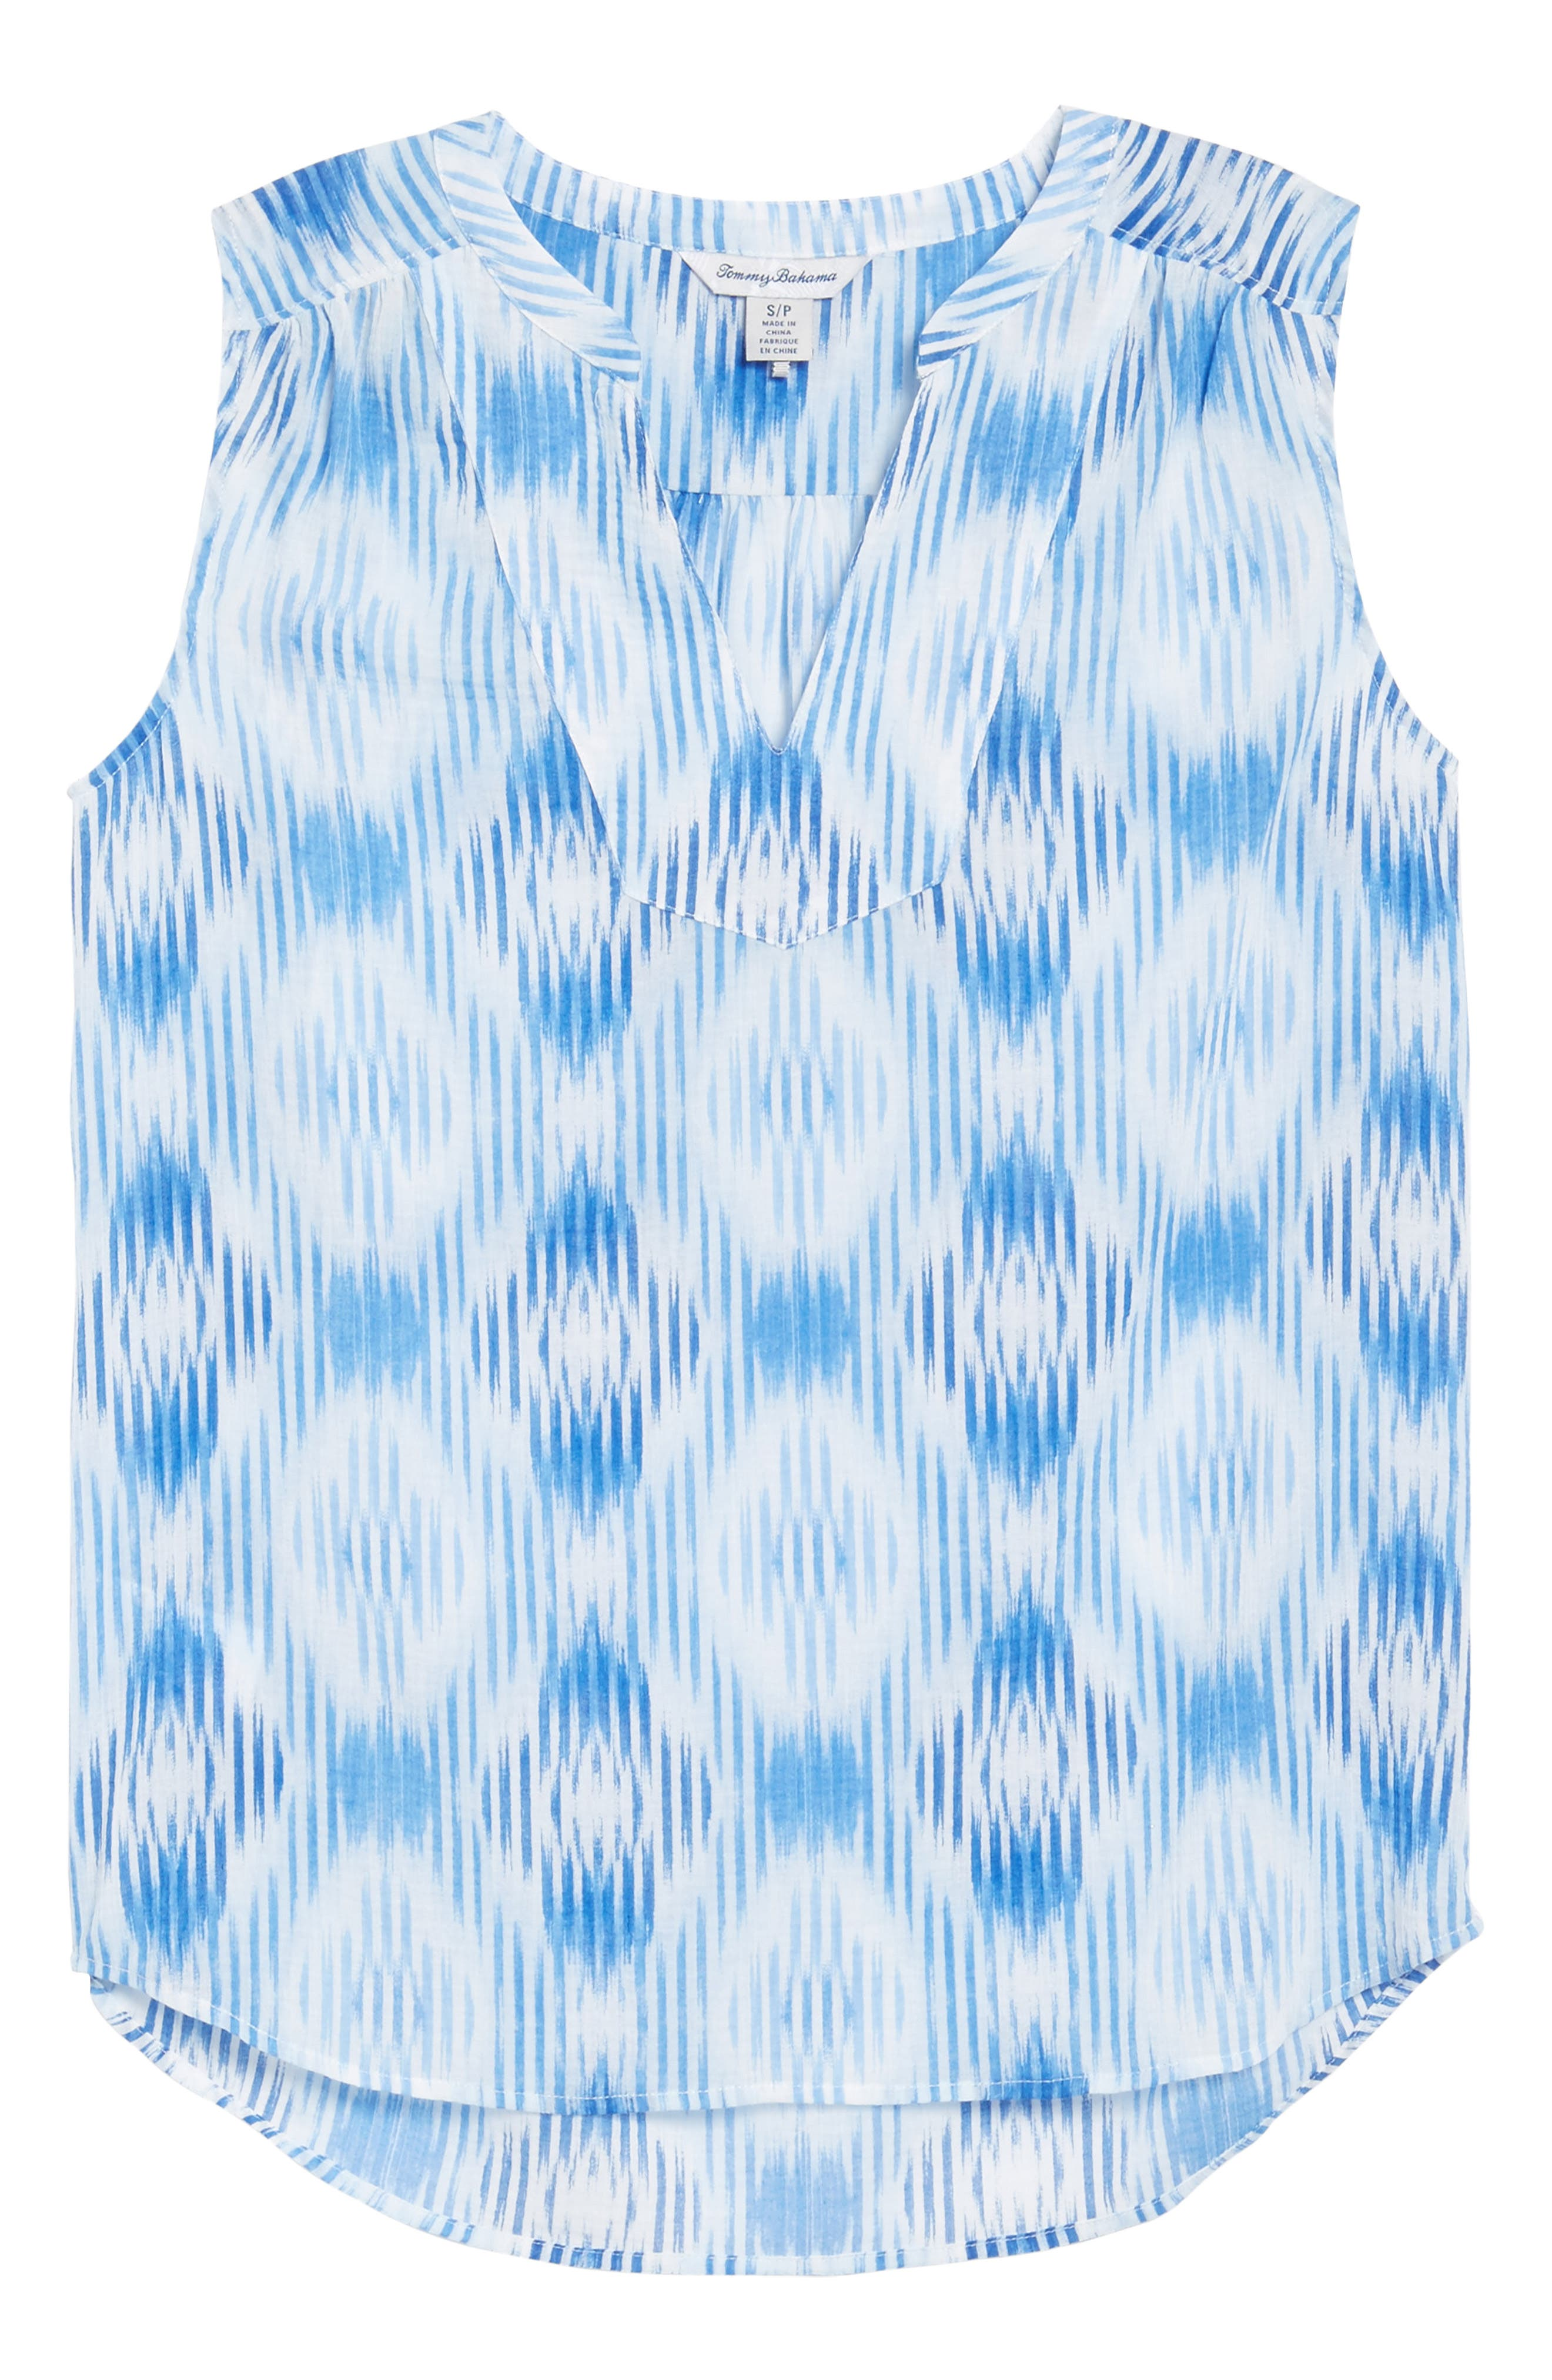 Isabella Sleeveless Cotton Top,                             Alternate thumbnail 6, color,                             Palace Blue